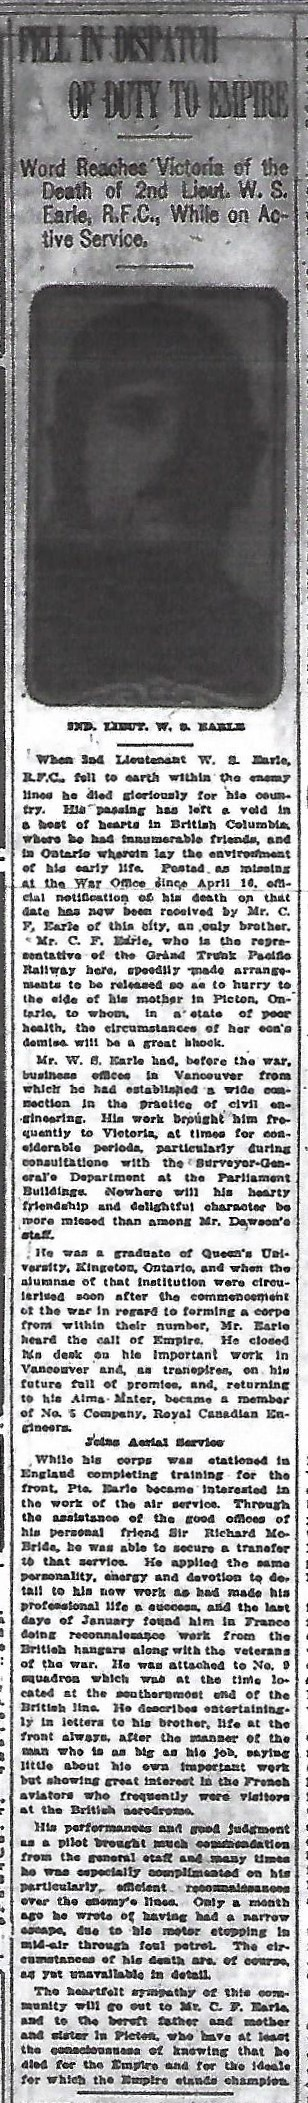 Newspaper clipping– from the daily Colonist of April 23, 1916. Image taken from web address of https://archive.org/stream/dailycolonist58y115uvic#mode/1up